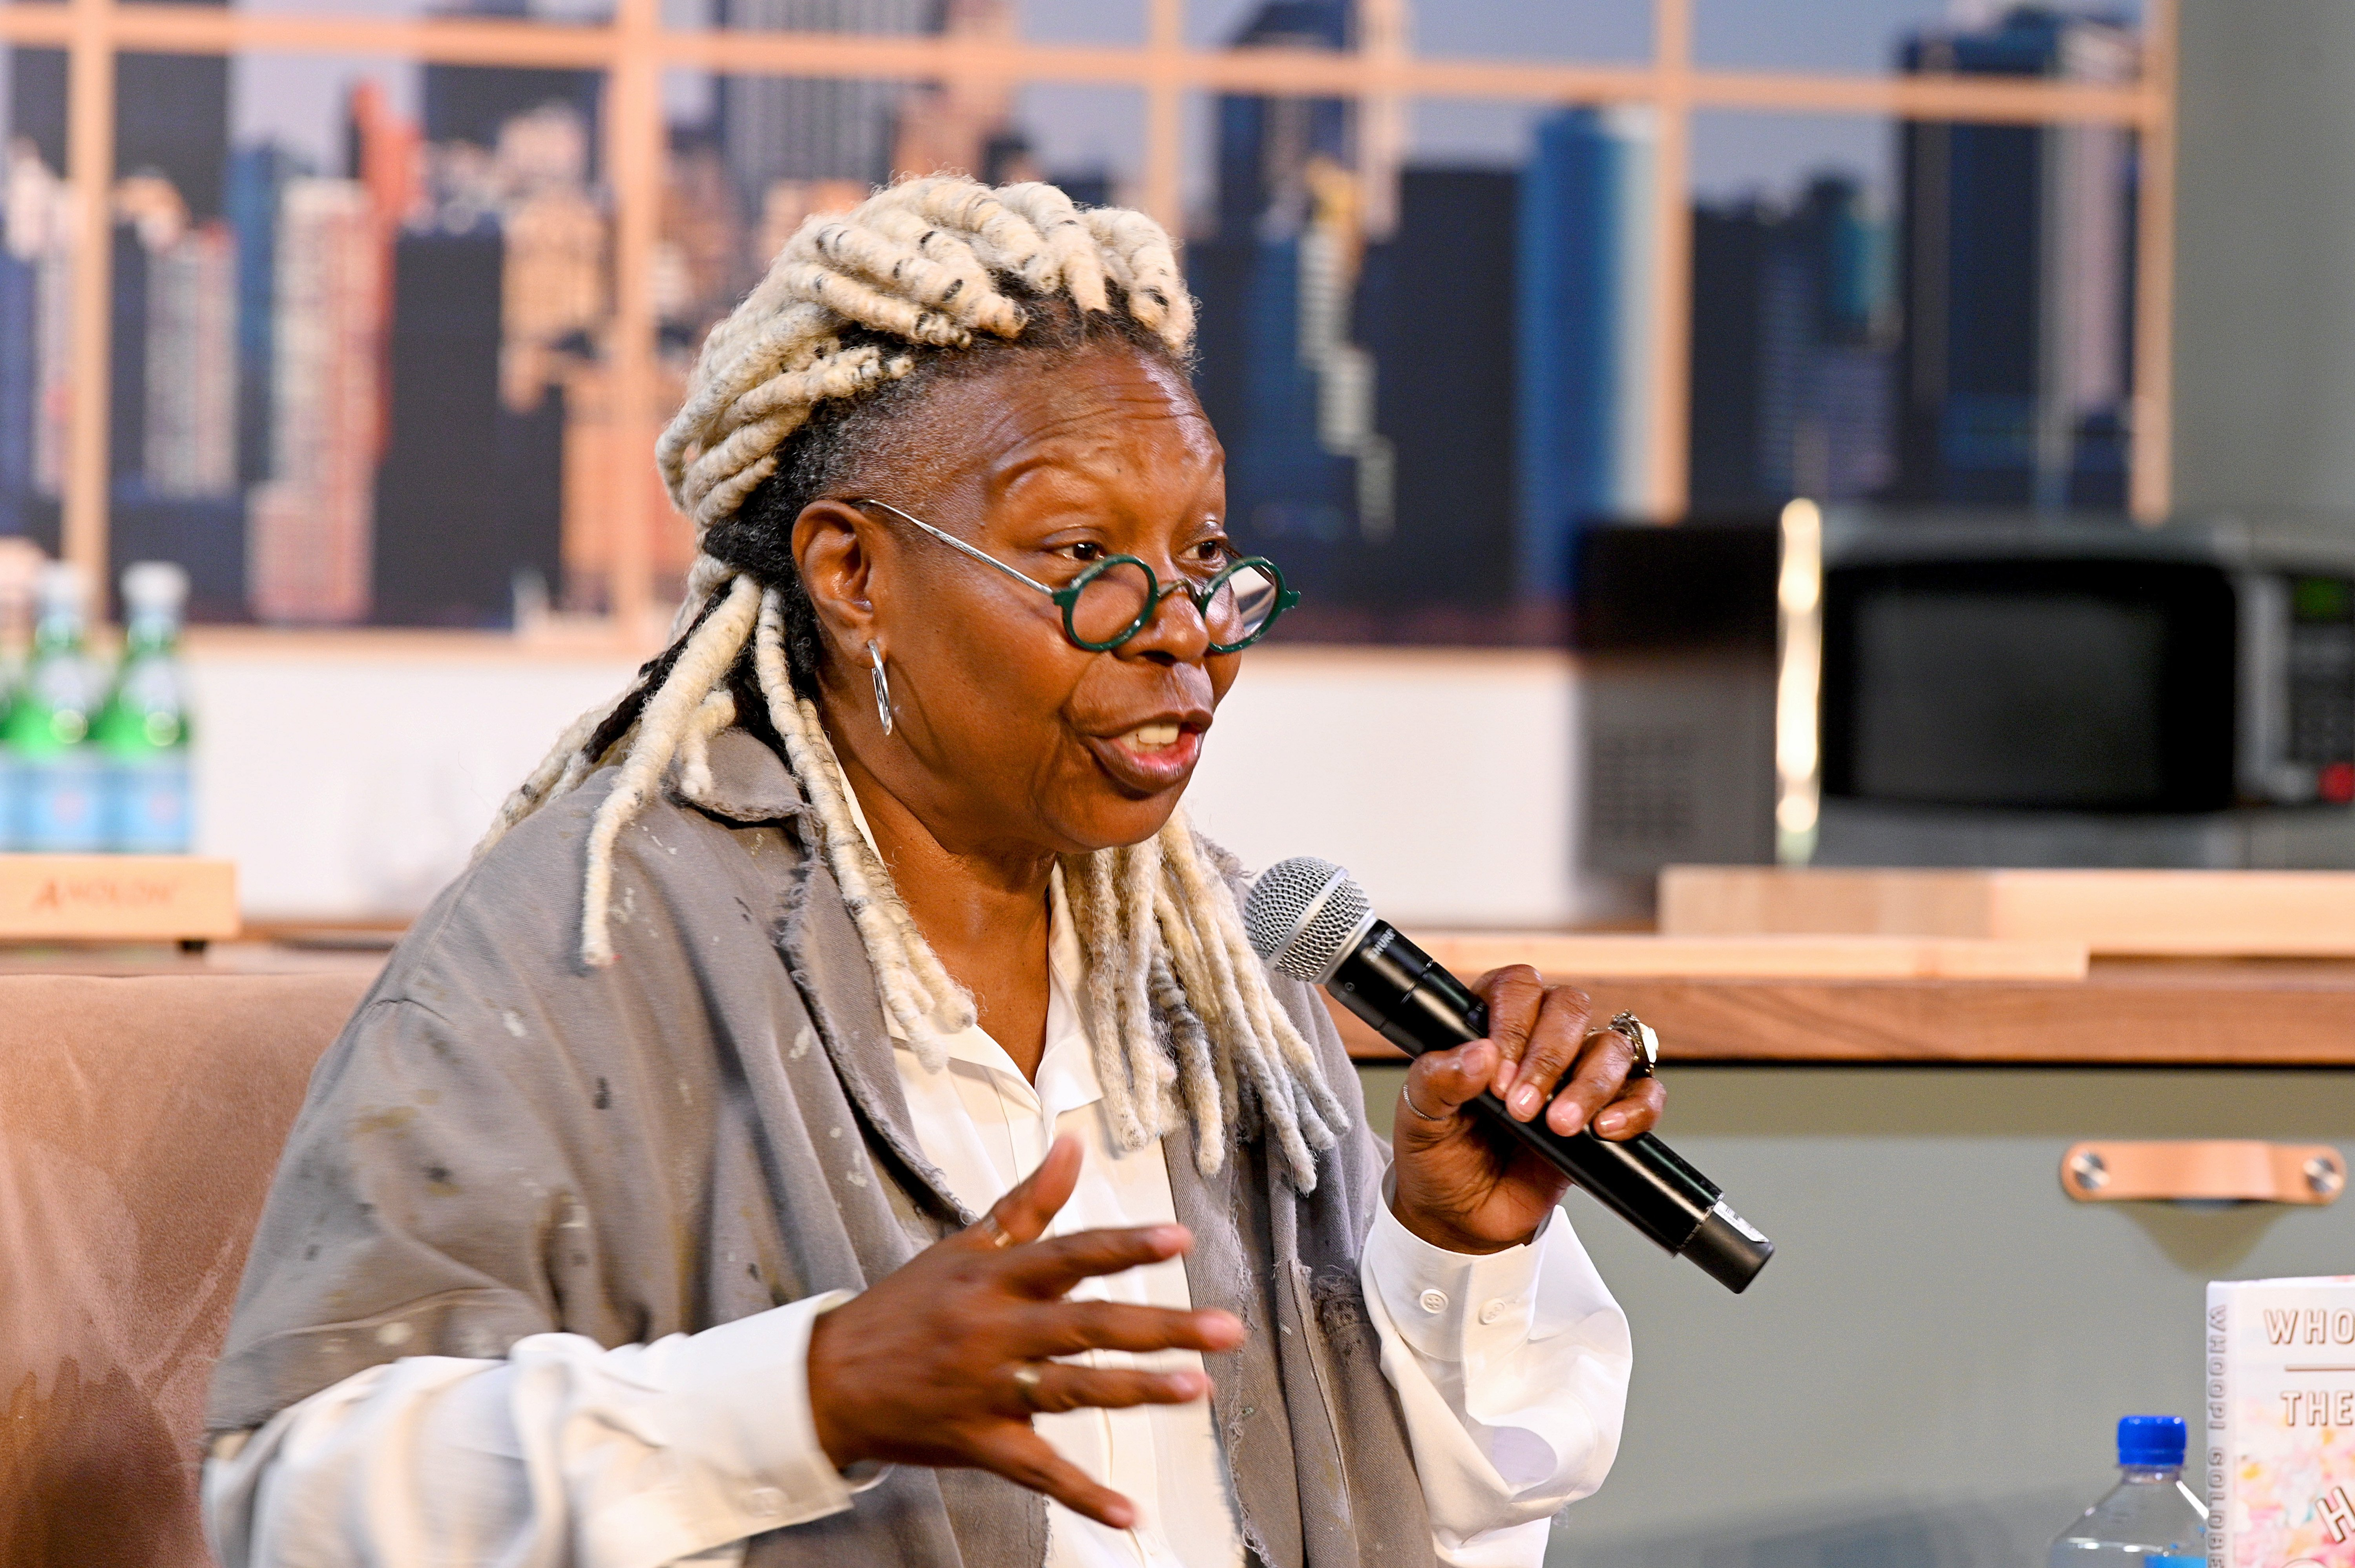 Whoopi Goldberg speaks onstage during the Grand Tasting presented by ShopRite featuring Culinary Demonstrations at The IKEA Kitchen presented by Capital One at Pier 94 on October 13, 2019, in New York City. | Source: Getty Images.